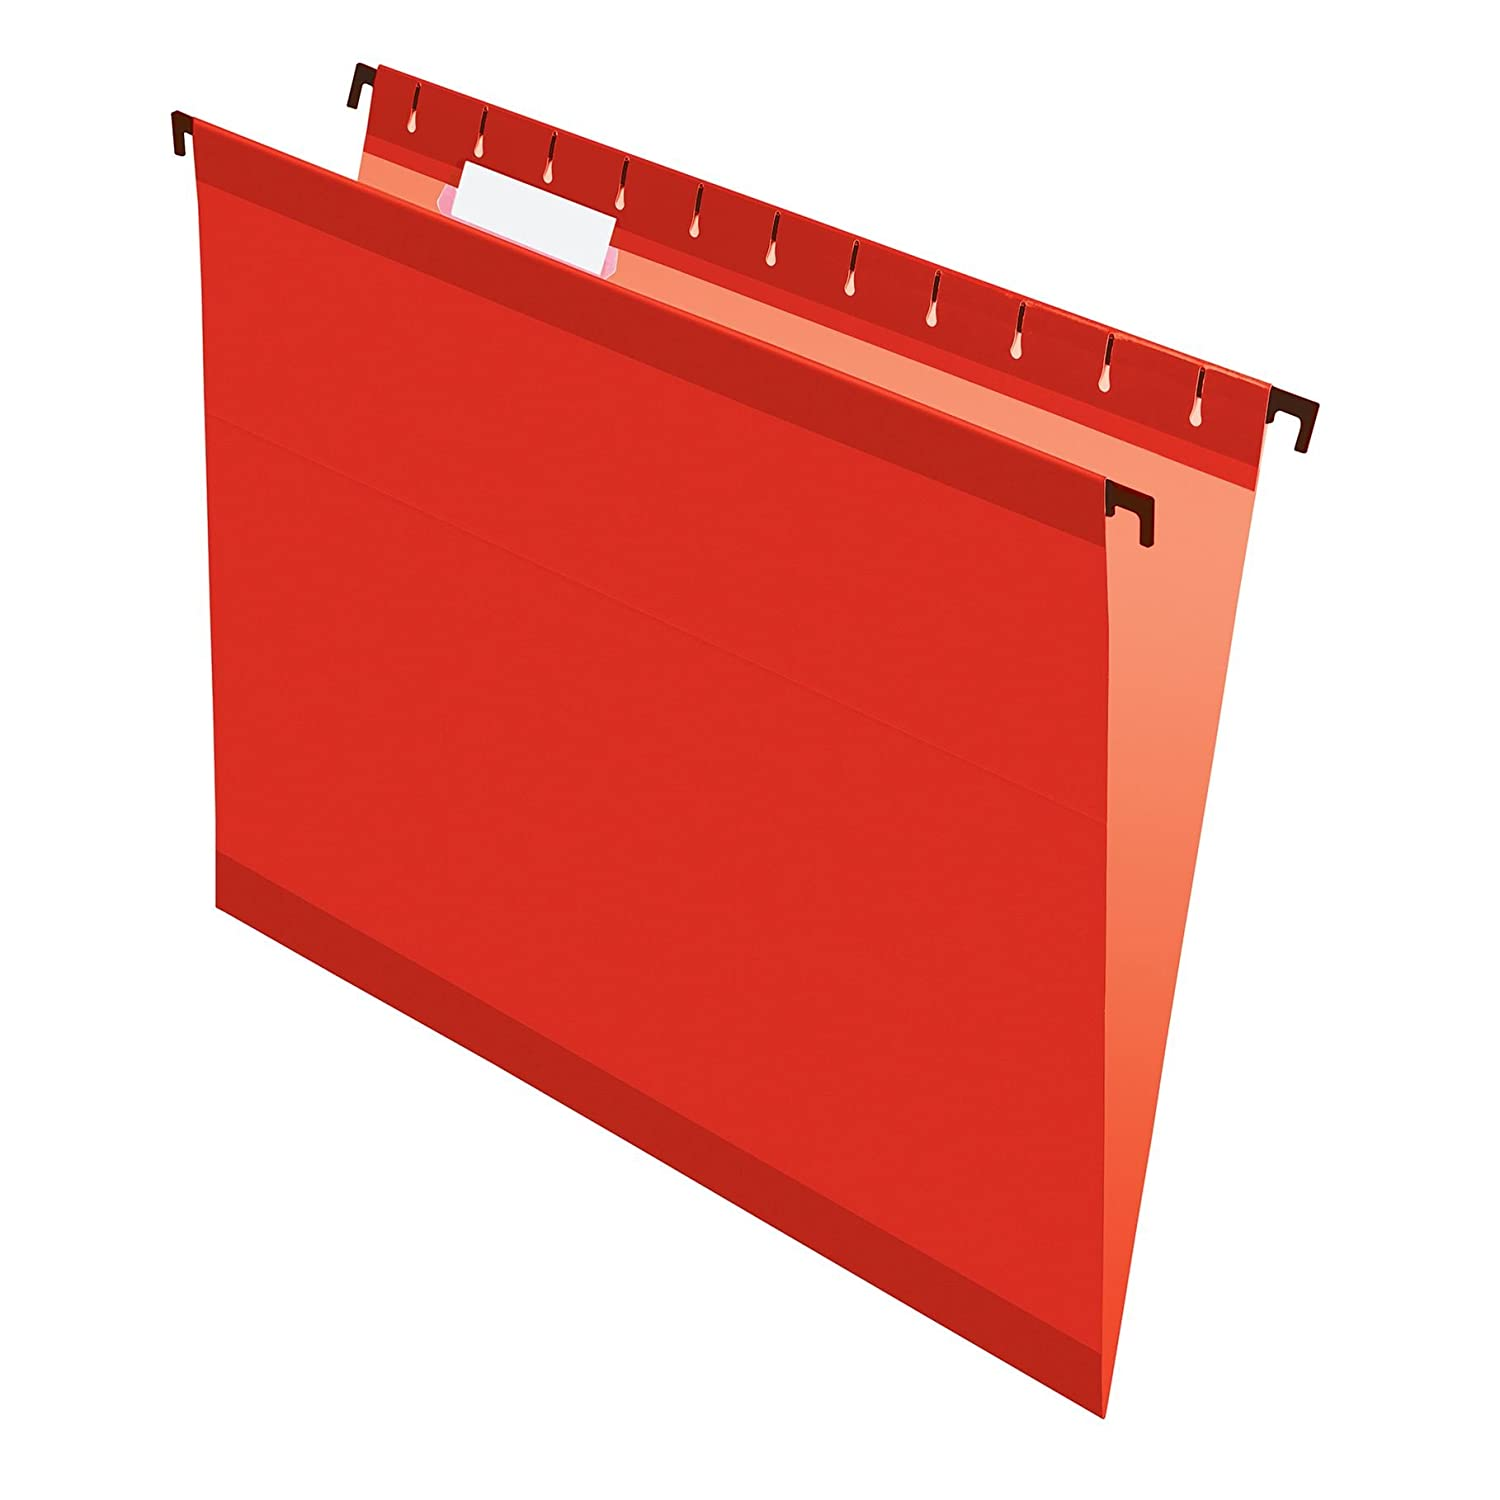 Pendaflex Surehook Reinforced Hanging File Folders, Letter Size, Blue, 20 Per Box (6152 1/5 BLU) Esselte Corporation